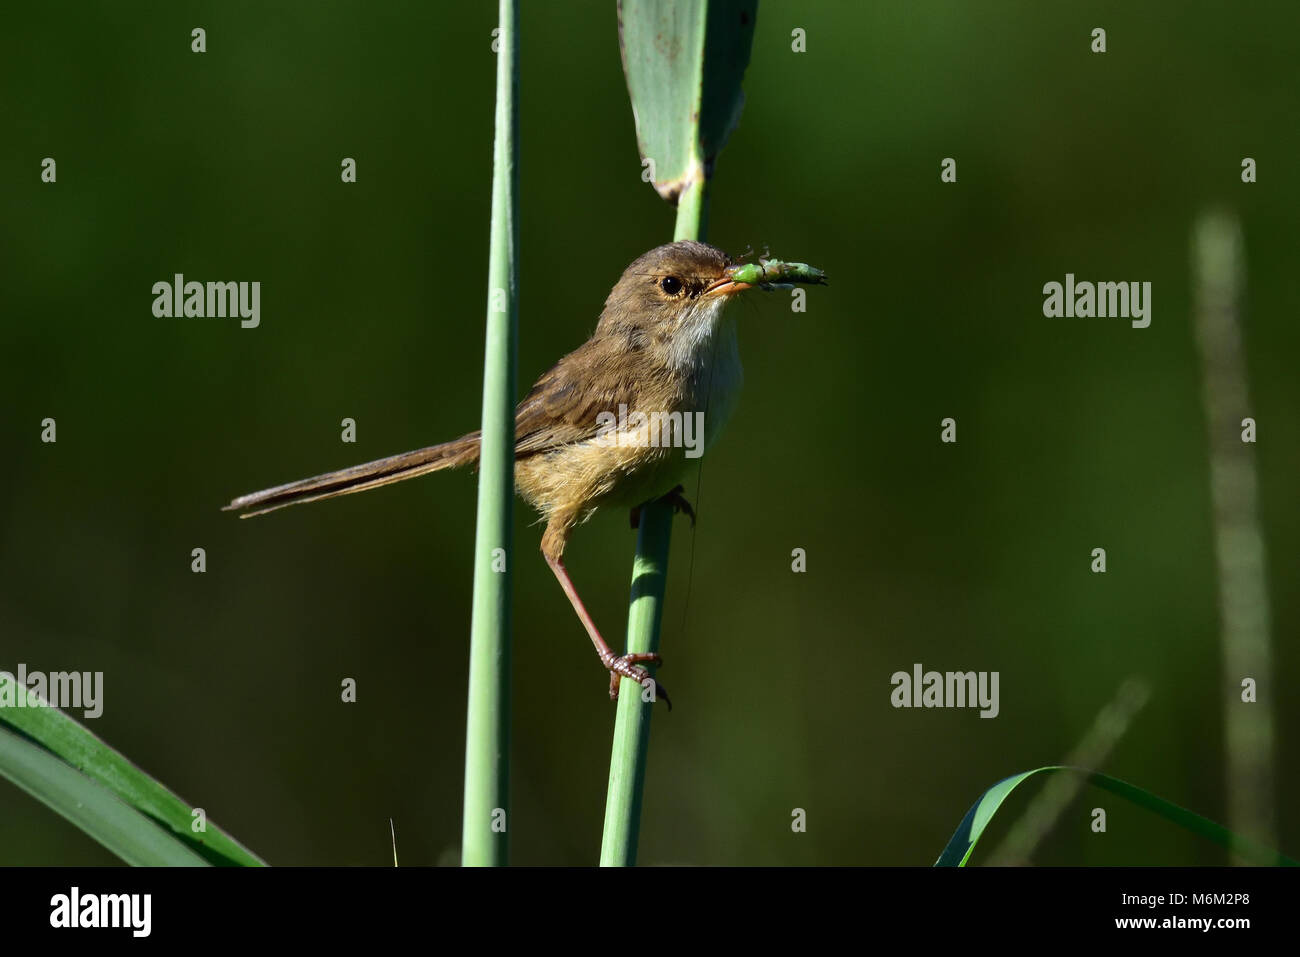 An Australian, Queensland Female Red-backed Fairy-wren with an Insect in its mouth Stock Photo